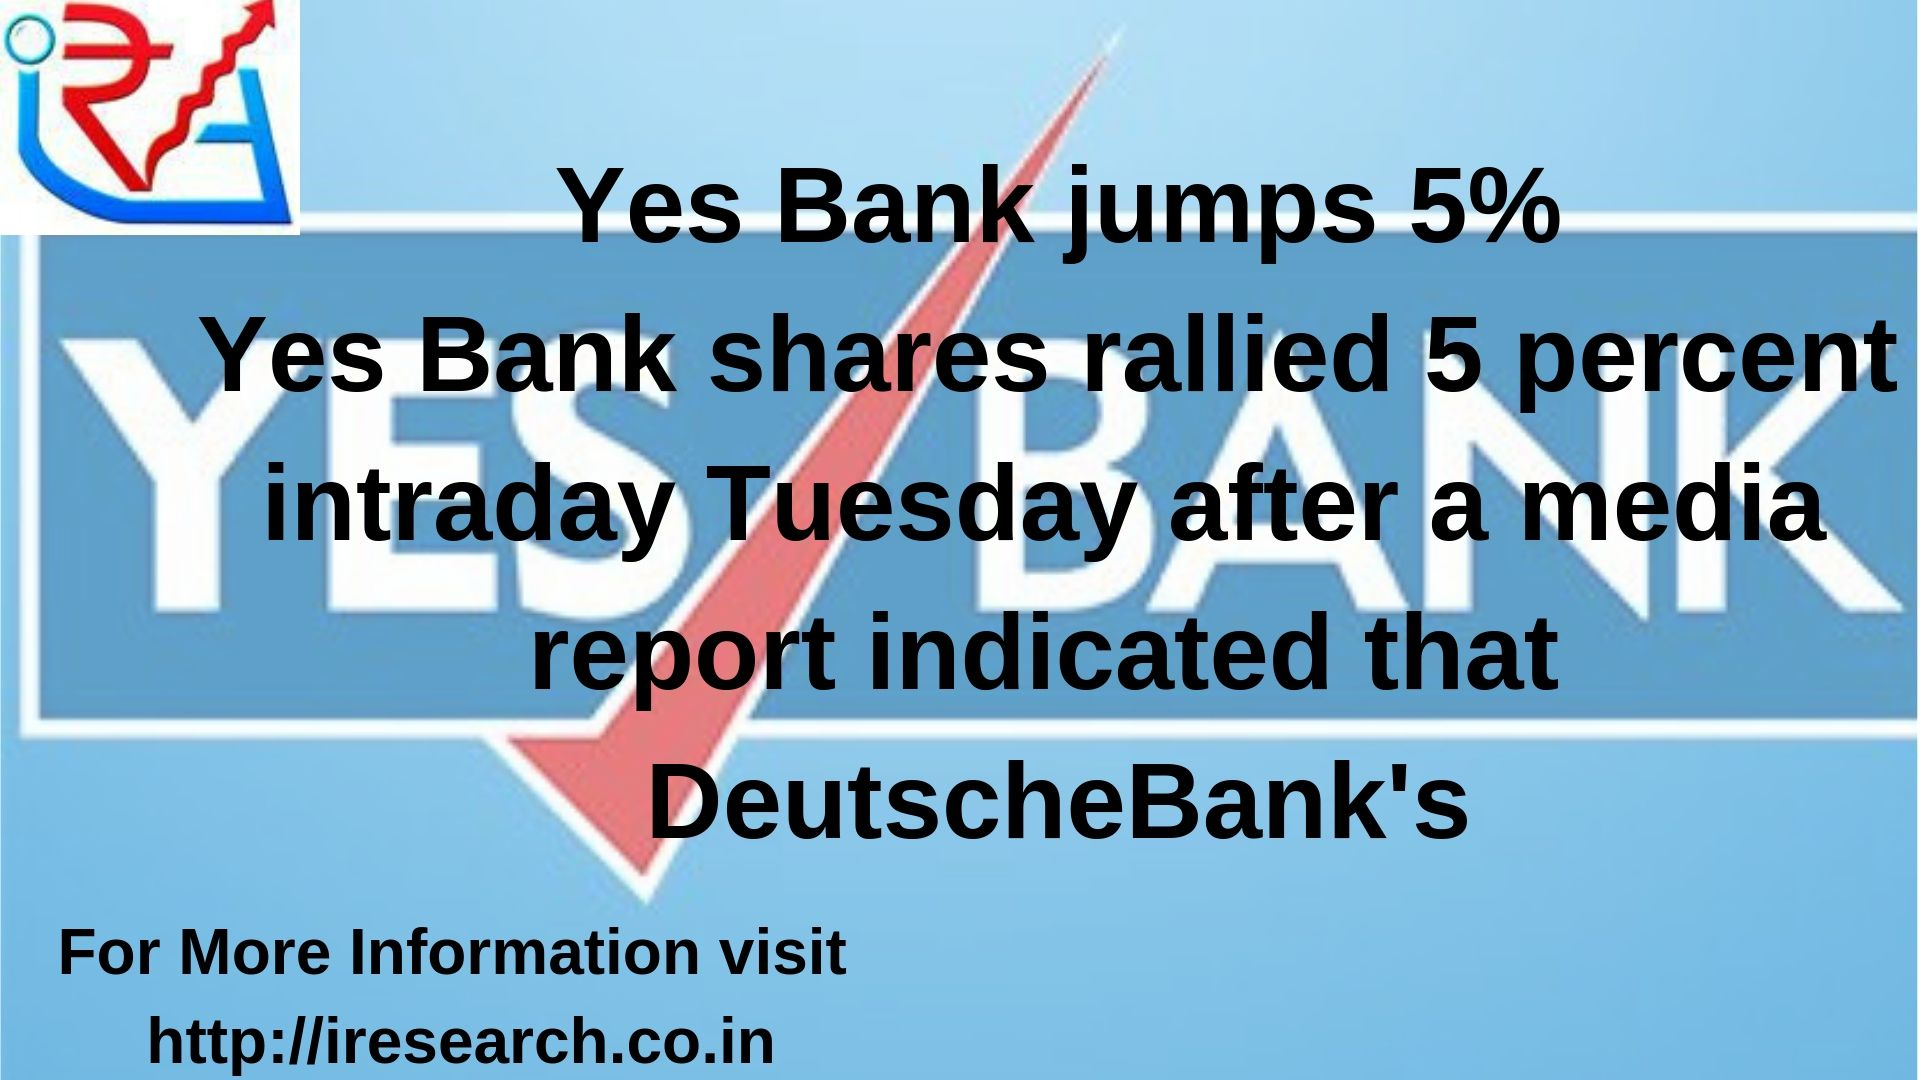 YesBank shares rallied 5 percent intraday Tuesday after